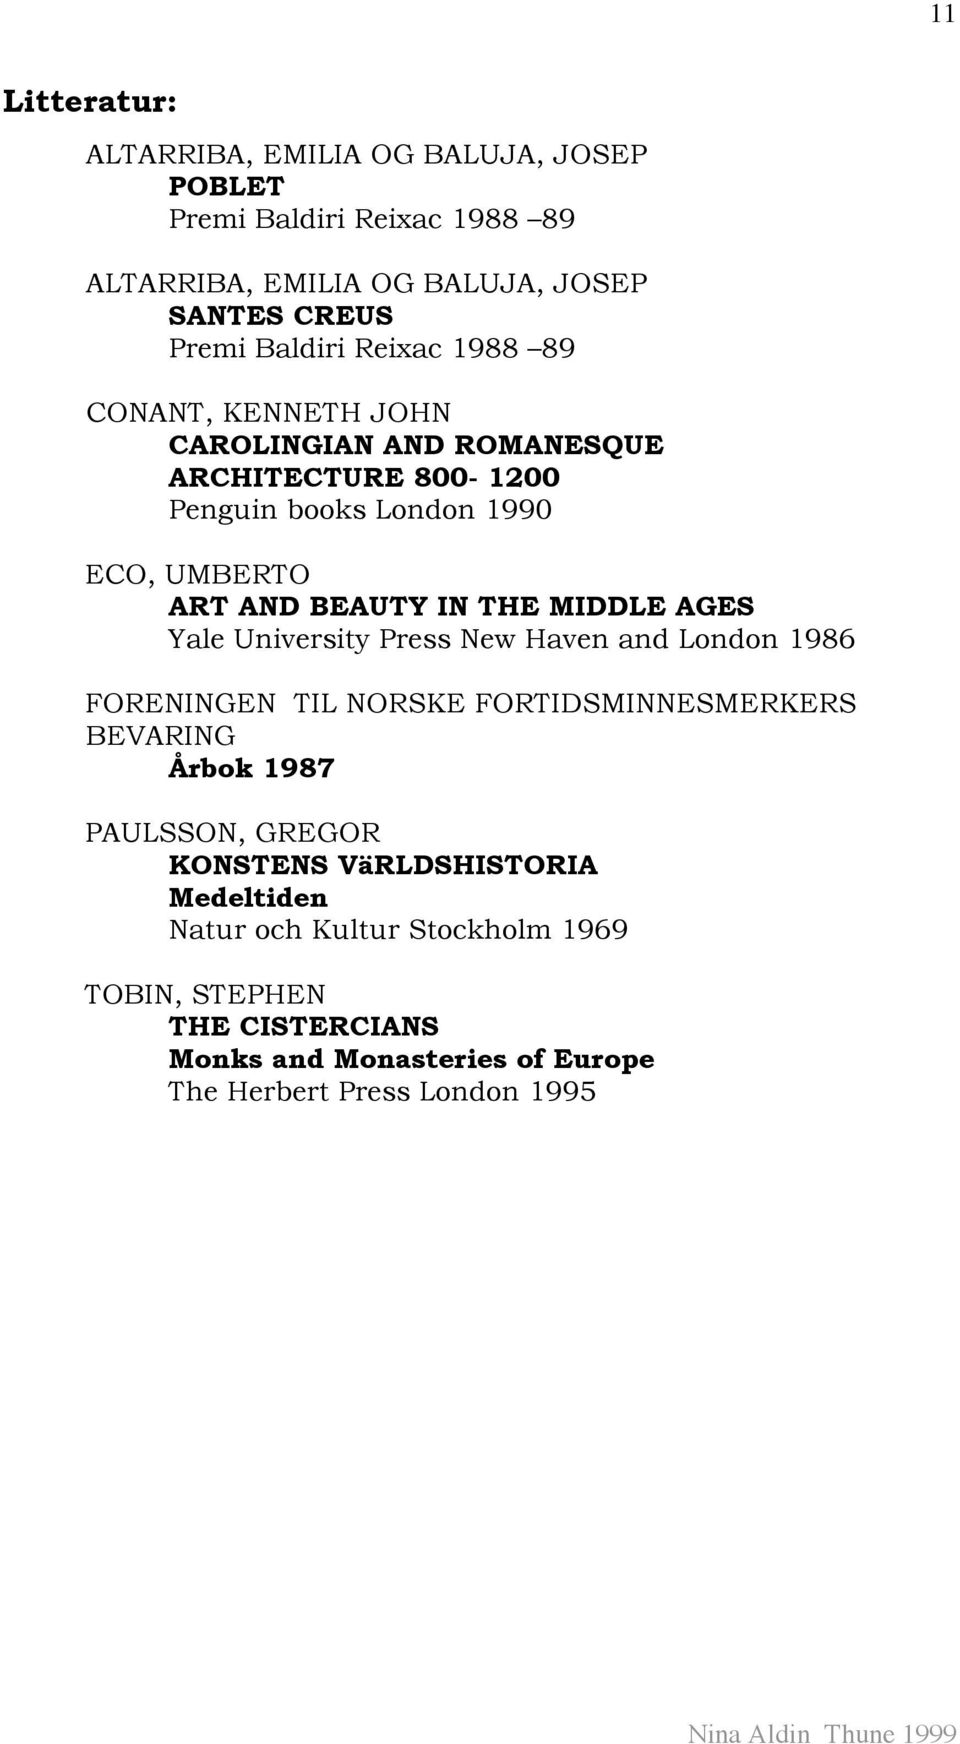 MIDDLE AGES Yale University Press New Haven and London 1986 FORENINGEN TIL NORSKE FORTIDSMINNESMERKERS BEVARING Årbok 1987 PAULSSON, GREGOR KONSTENS